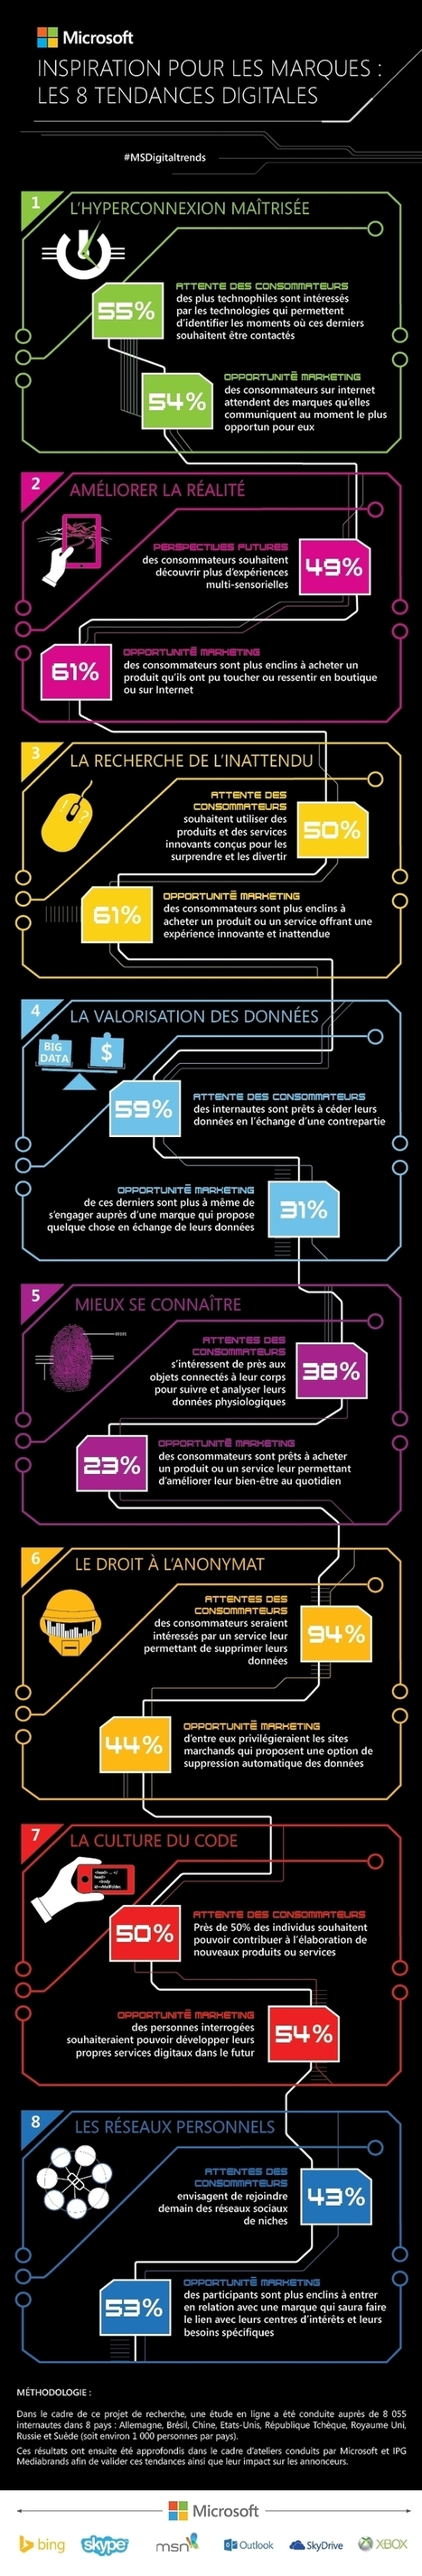 Infographie | 8 inspirations digitales pour les marques en 2014 | Les inclassables | Scoop.it